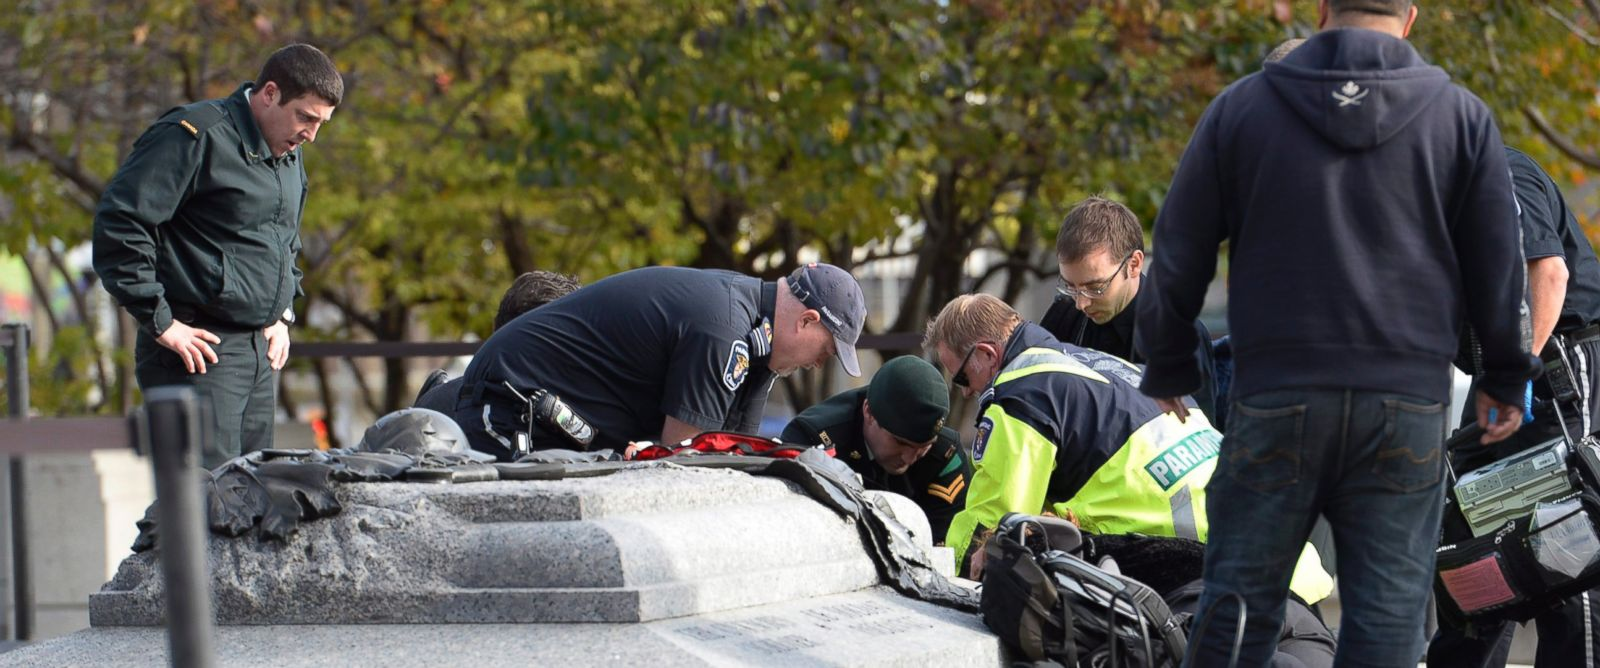 PHOTO: Emergency personnel tend to a soldier shot at the National Memorial near Parliament Hill in Ottawa, Oct. 22, 2014.